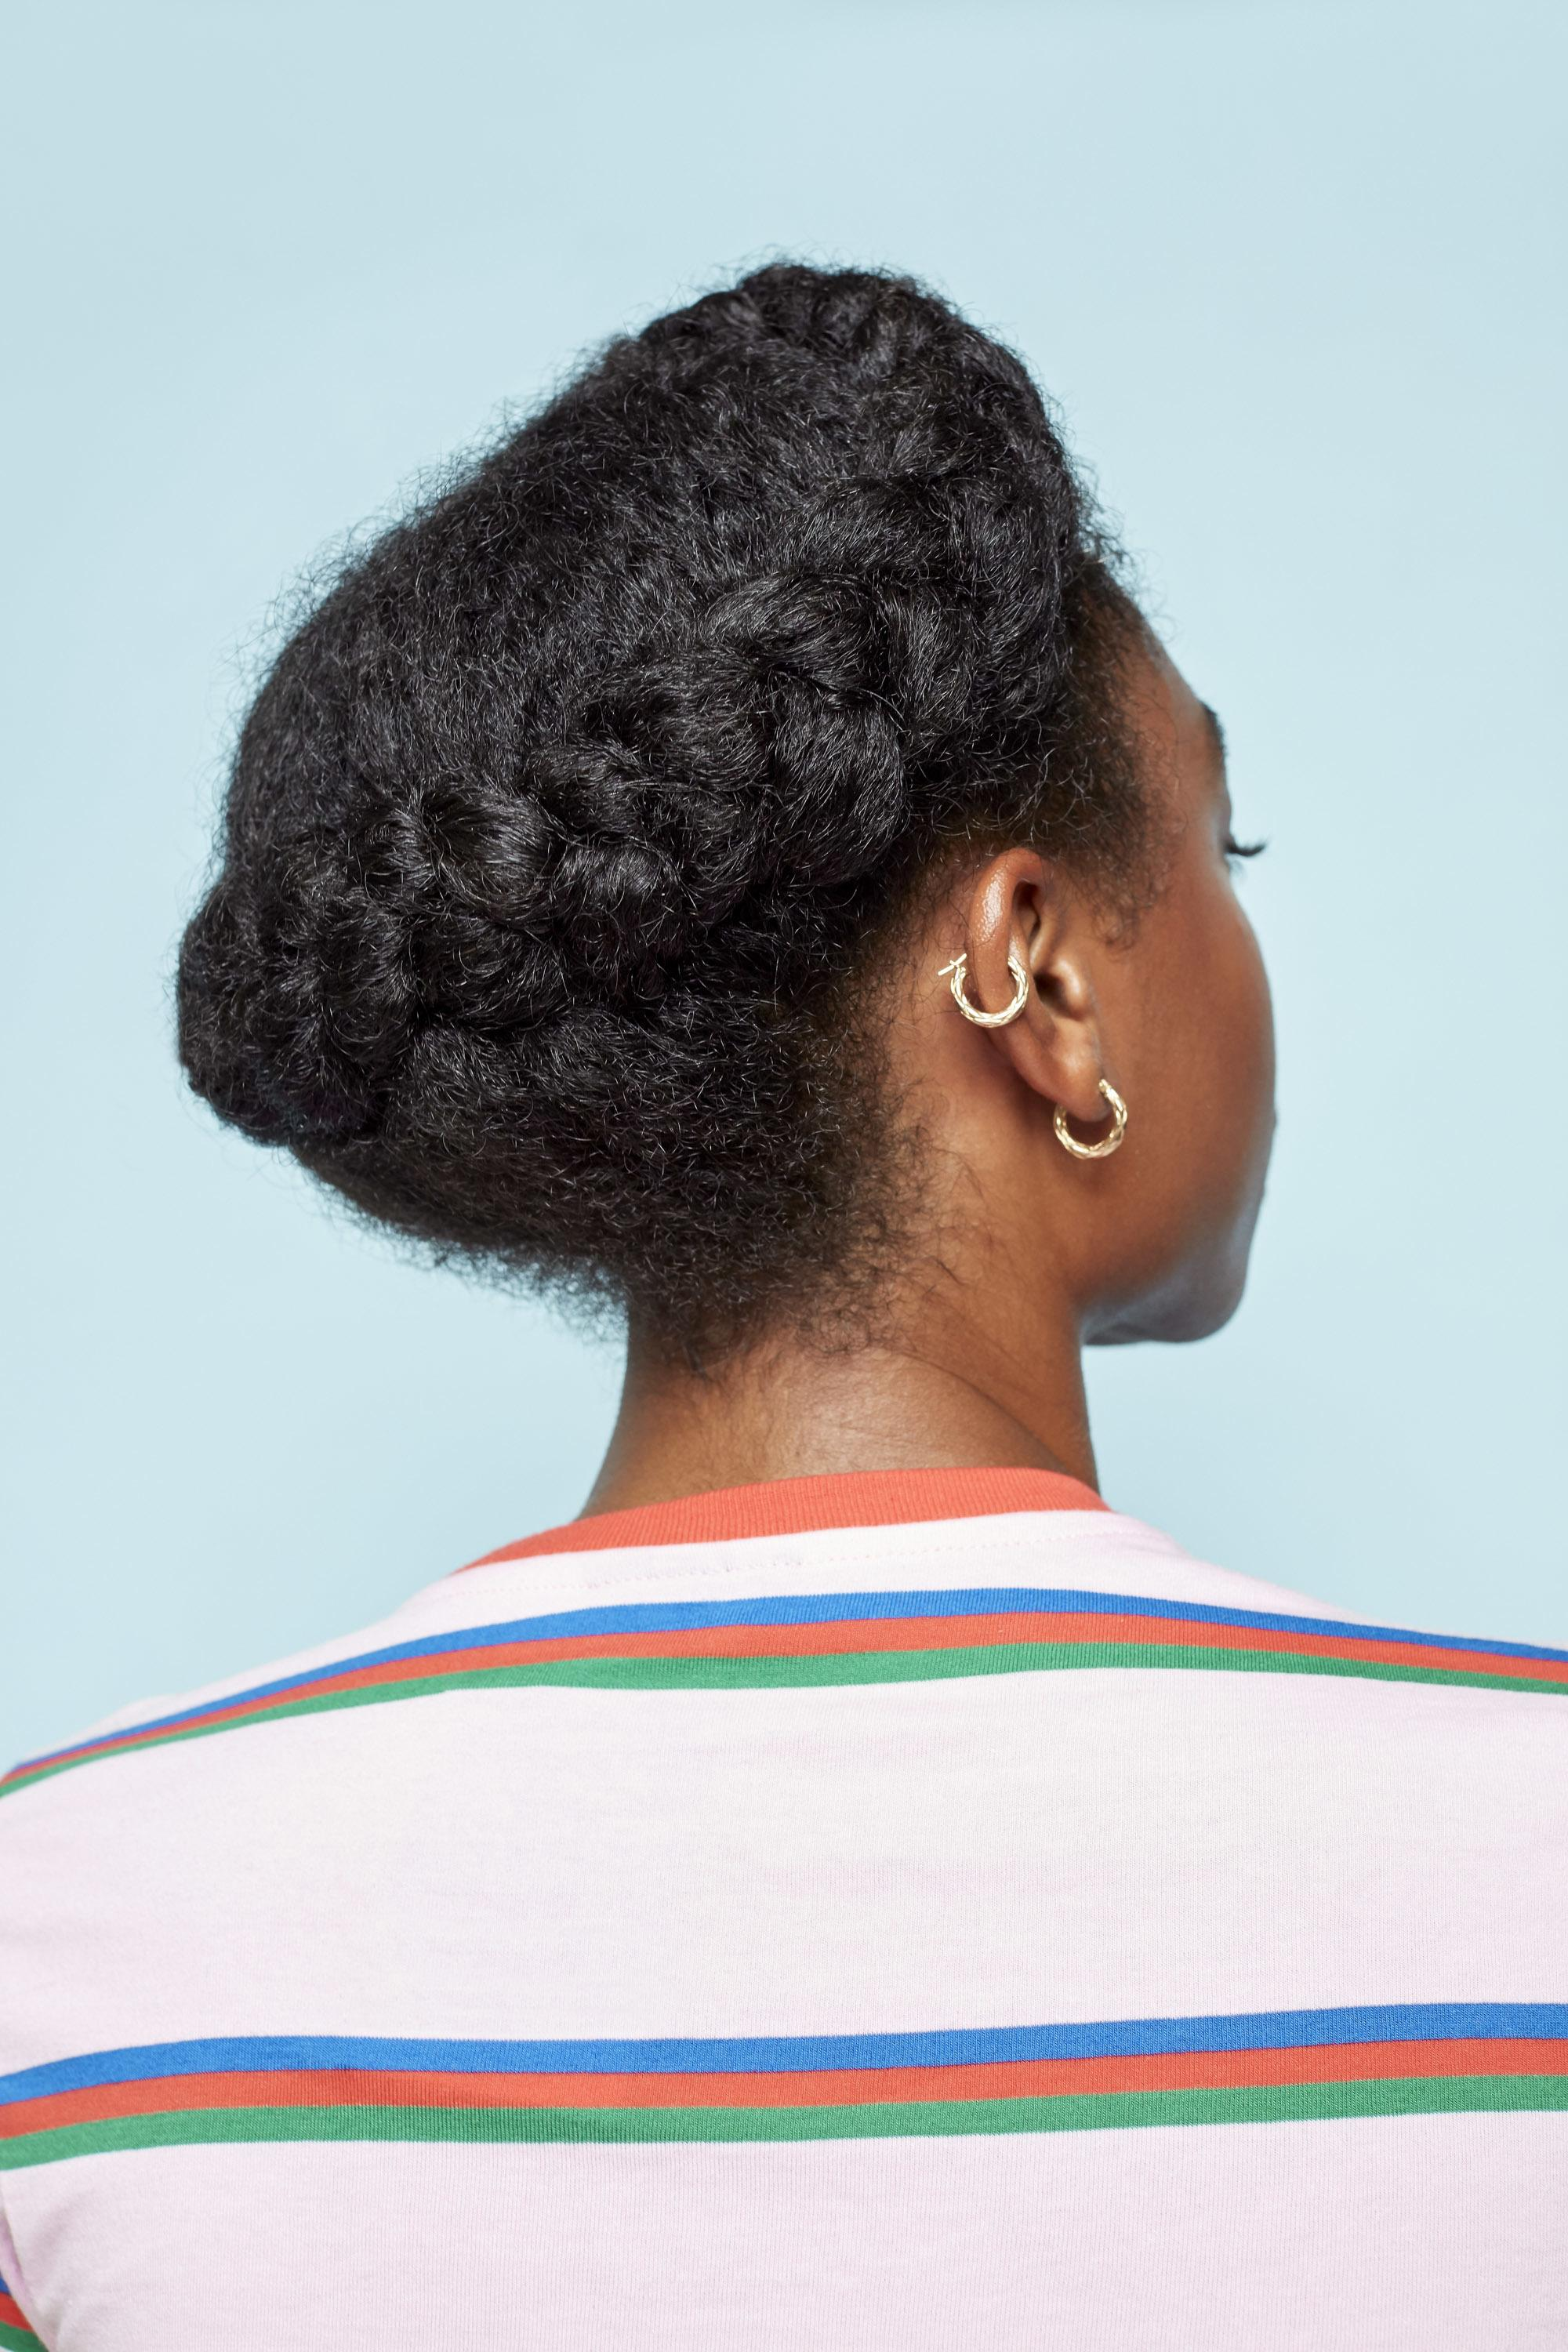 Easy natural hairstyles: Back shot of a model with dark brown natural hair styled into a halo braid, wearing a striped top and posing in a studio.